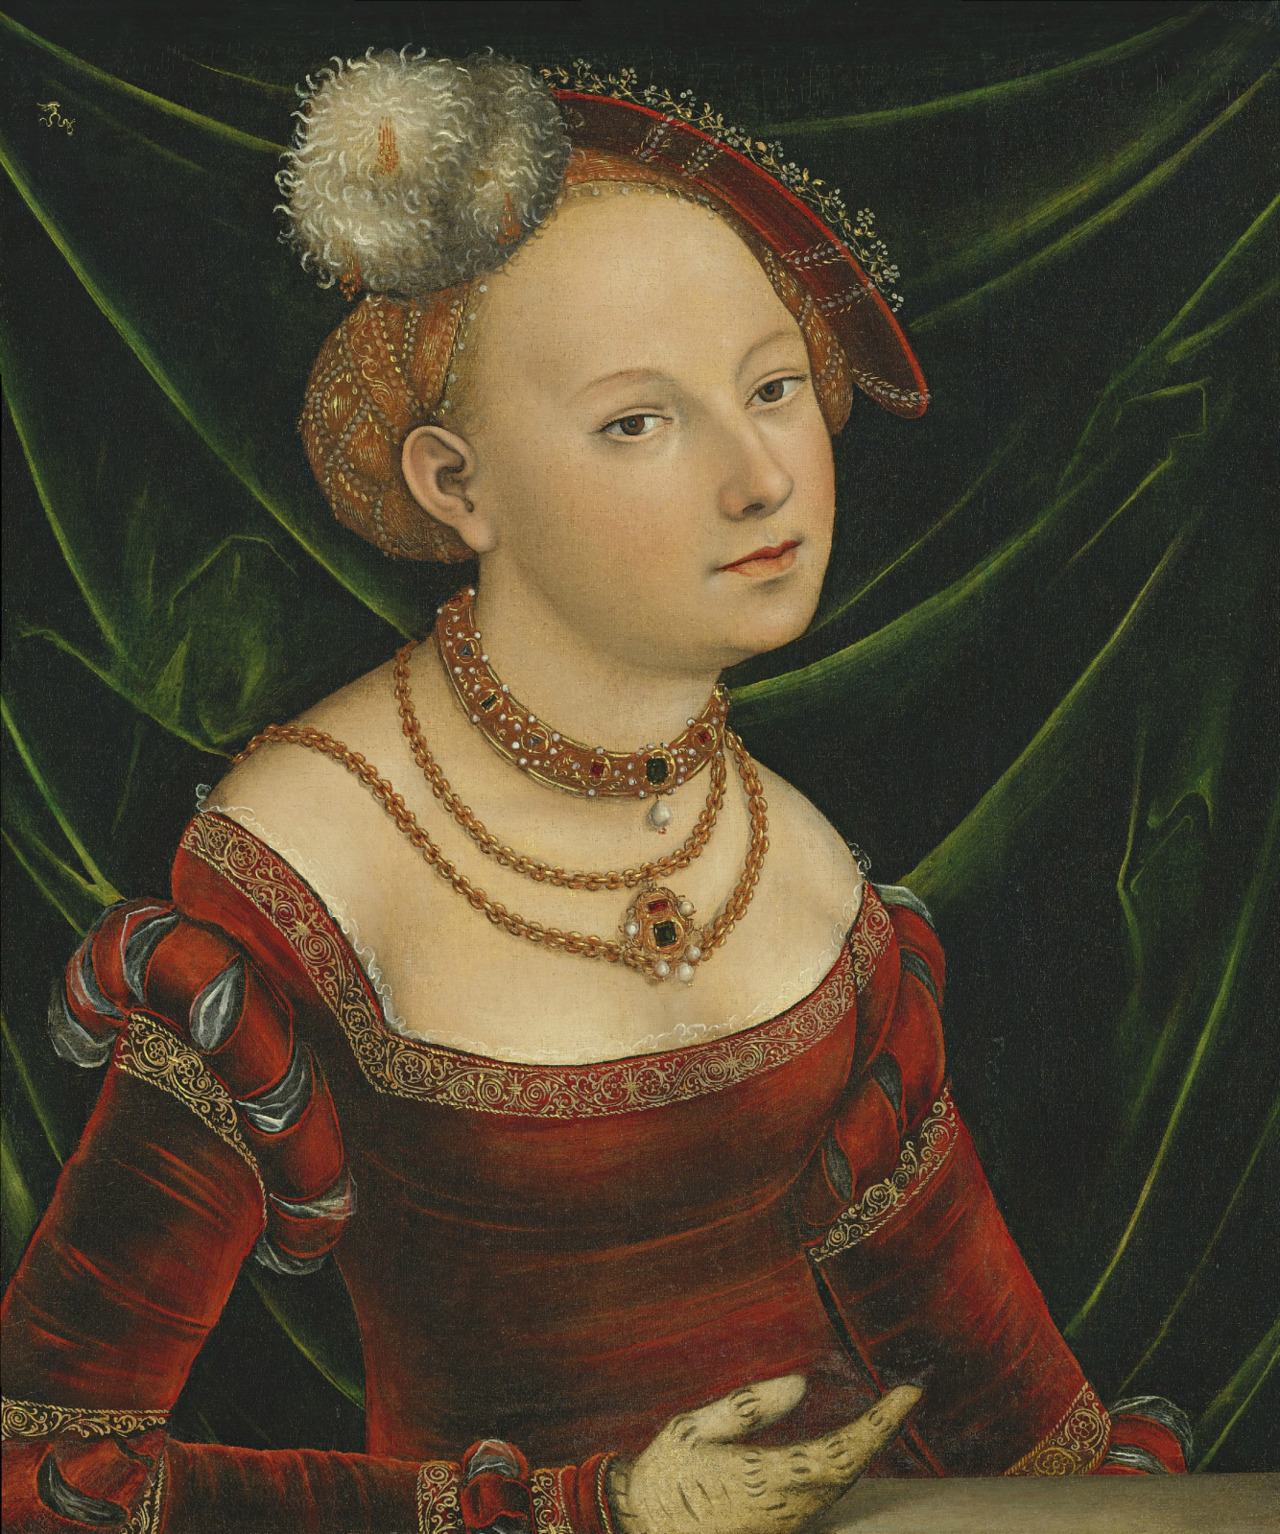 cavetocanvas:  Lucas Cranach the Younger, Portrait of a Woman, date unknown